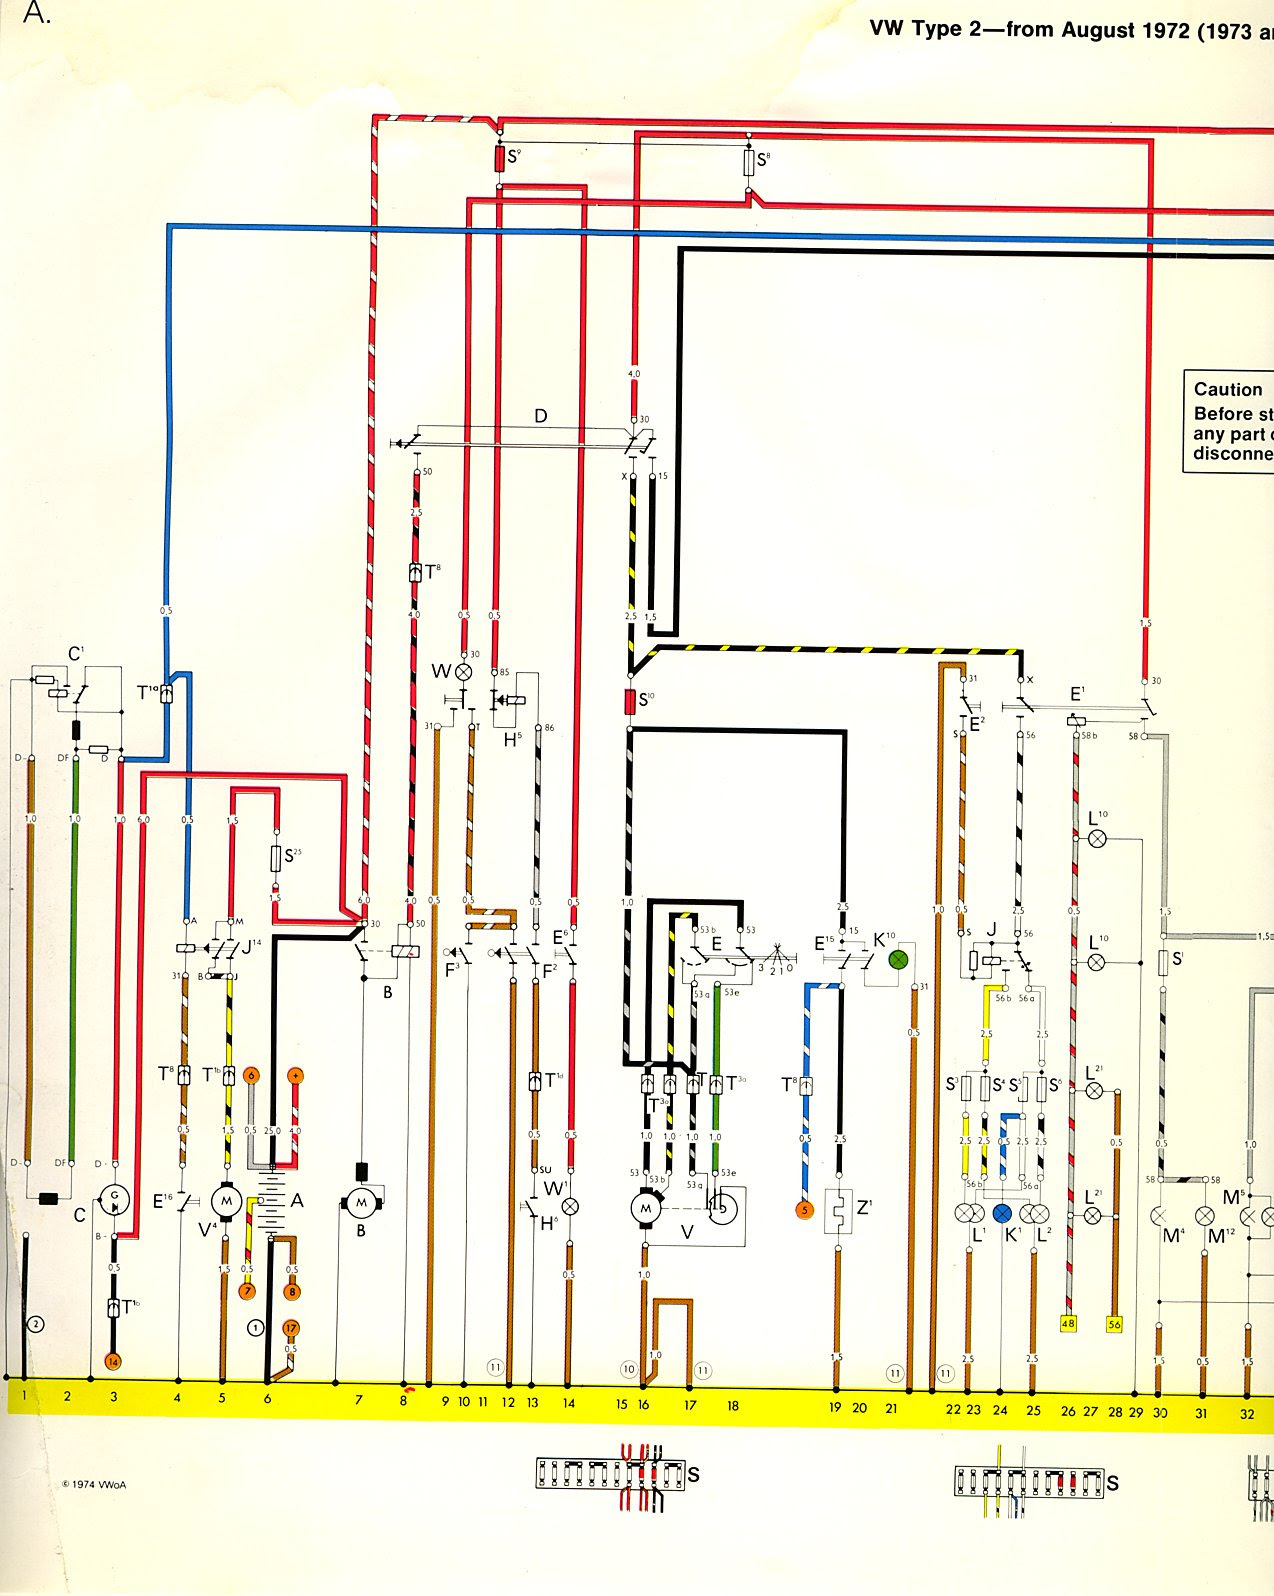 Download Schema 71 Volkswagen Ignition Switch Wiring Diagram Hd Quality Setdiagram Bruxelles Enscene Be